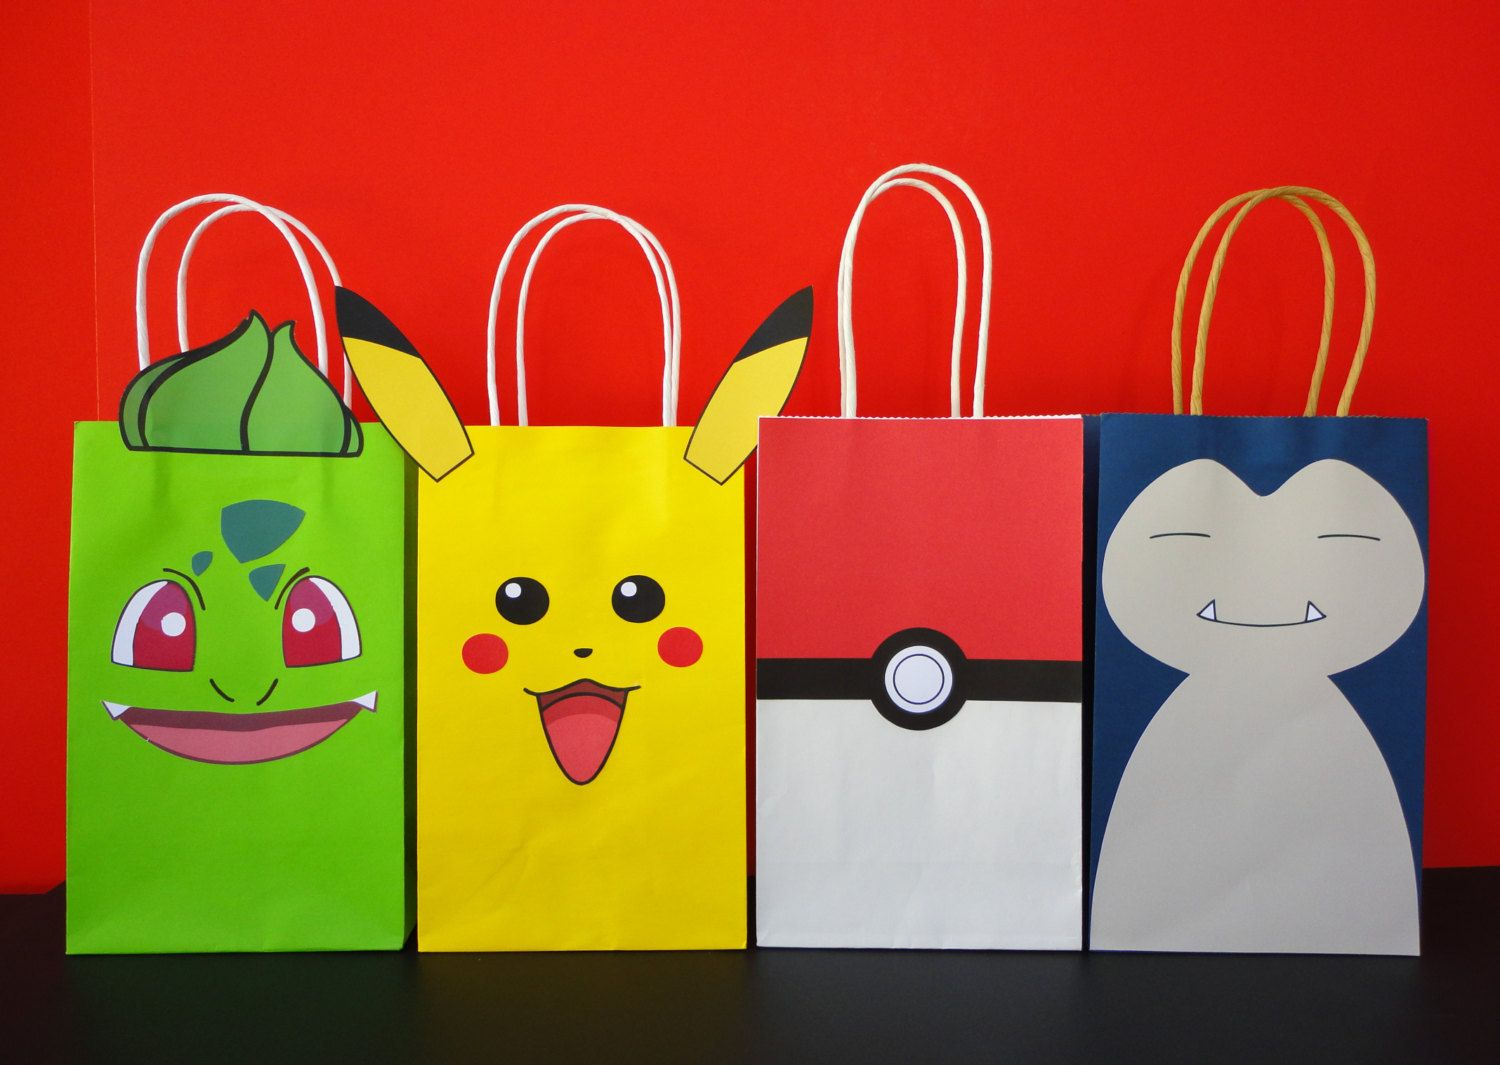 Suggested Bag Size 5 25w X 8 375h Or 25h Make Your Party Pop Out W These Unique Pokemon Favor Bags Designs They Are Very Easy To Assemble